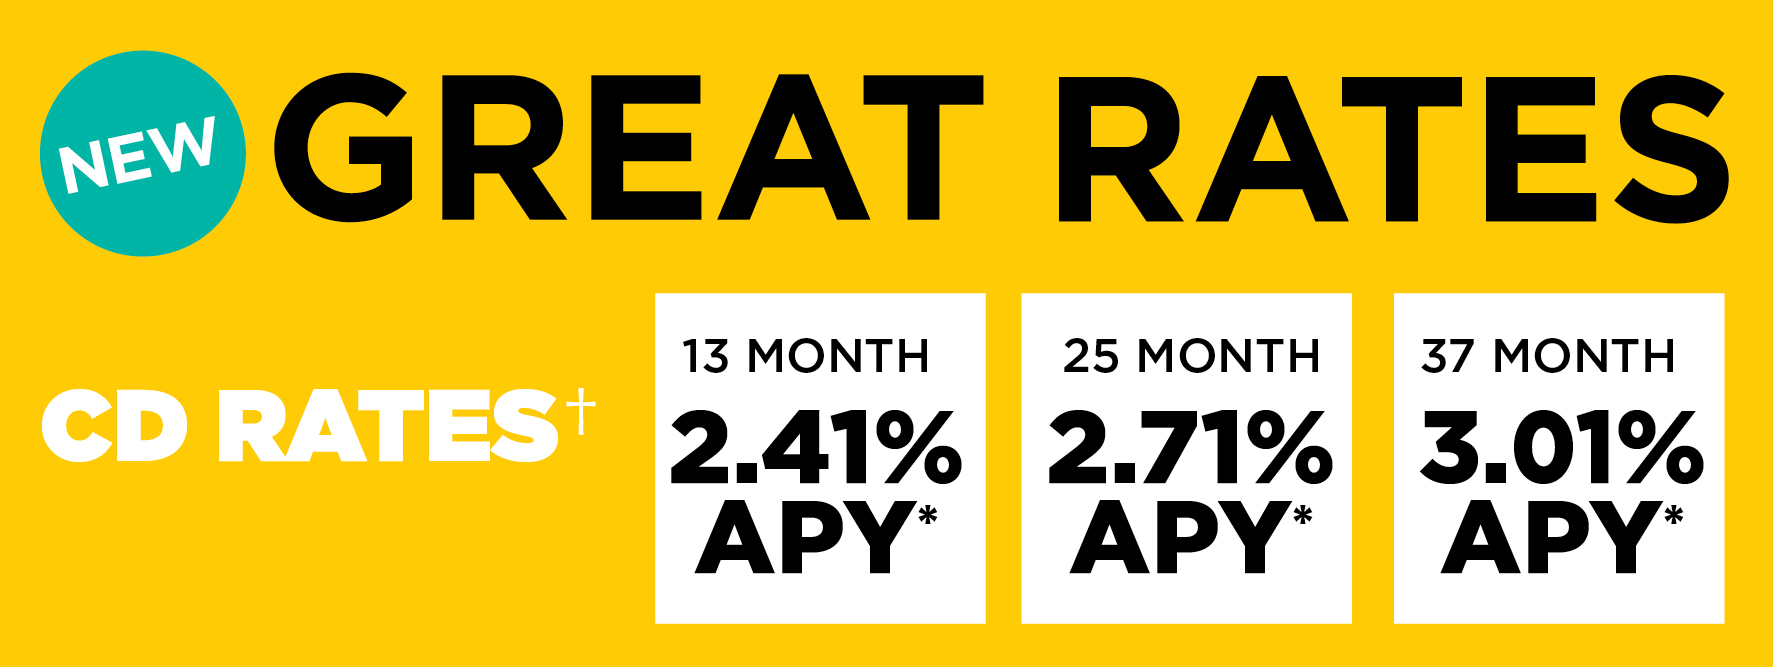 New Great Rates - 13 Mo 2.41% APY, 25 Mo 2.71% APY, 37 Mo 3.01% APY